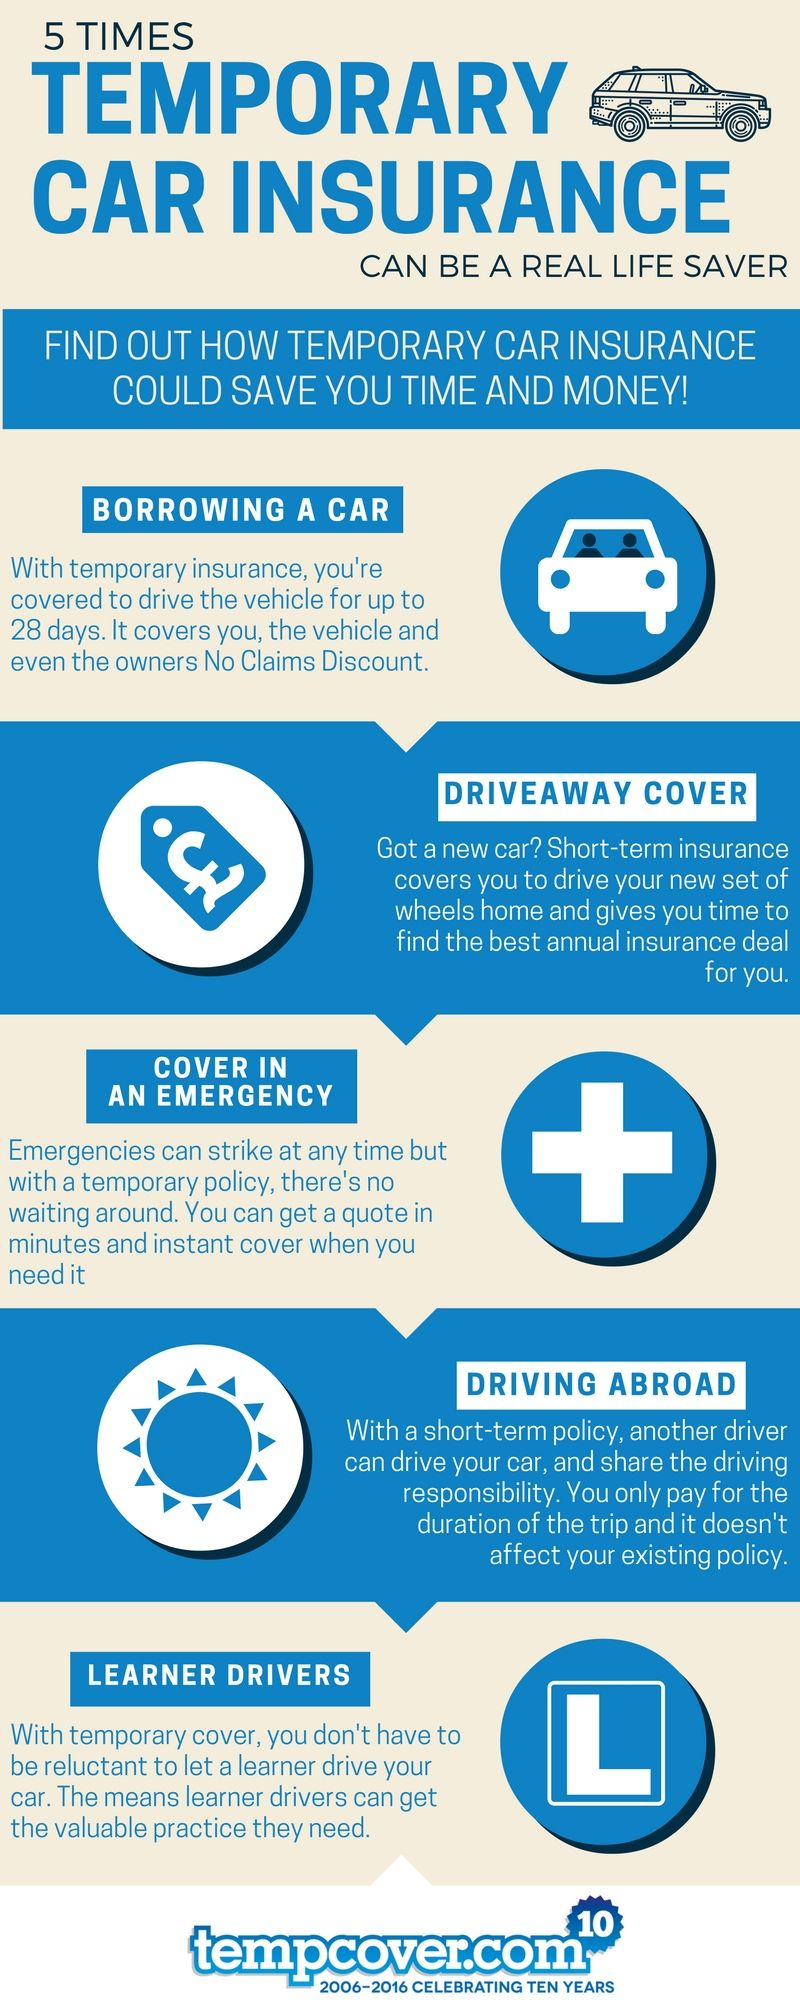 5 Times Temporary Car Insurance Could Be A Real Life Saver Home